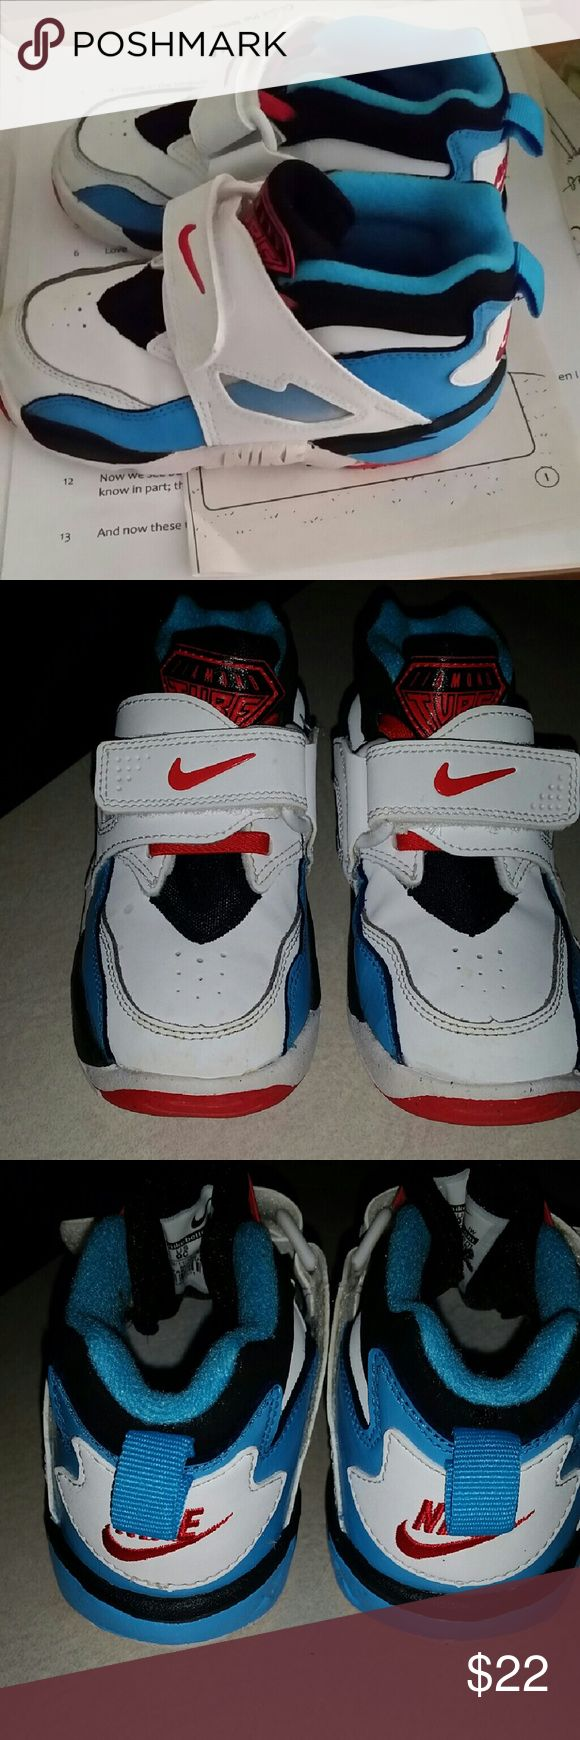 ce3f189f8c3 Cheap Old Nike Turf Shoes